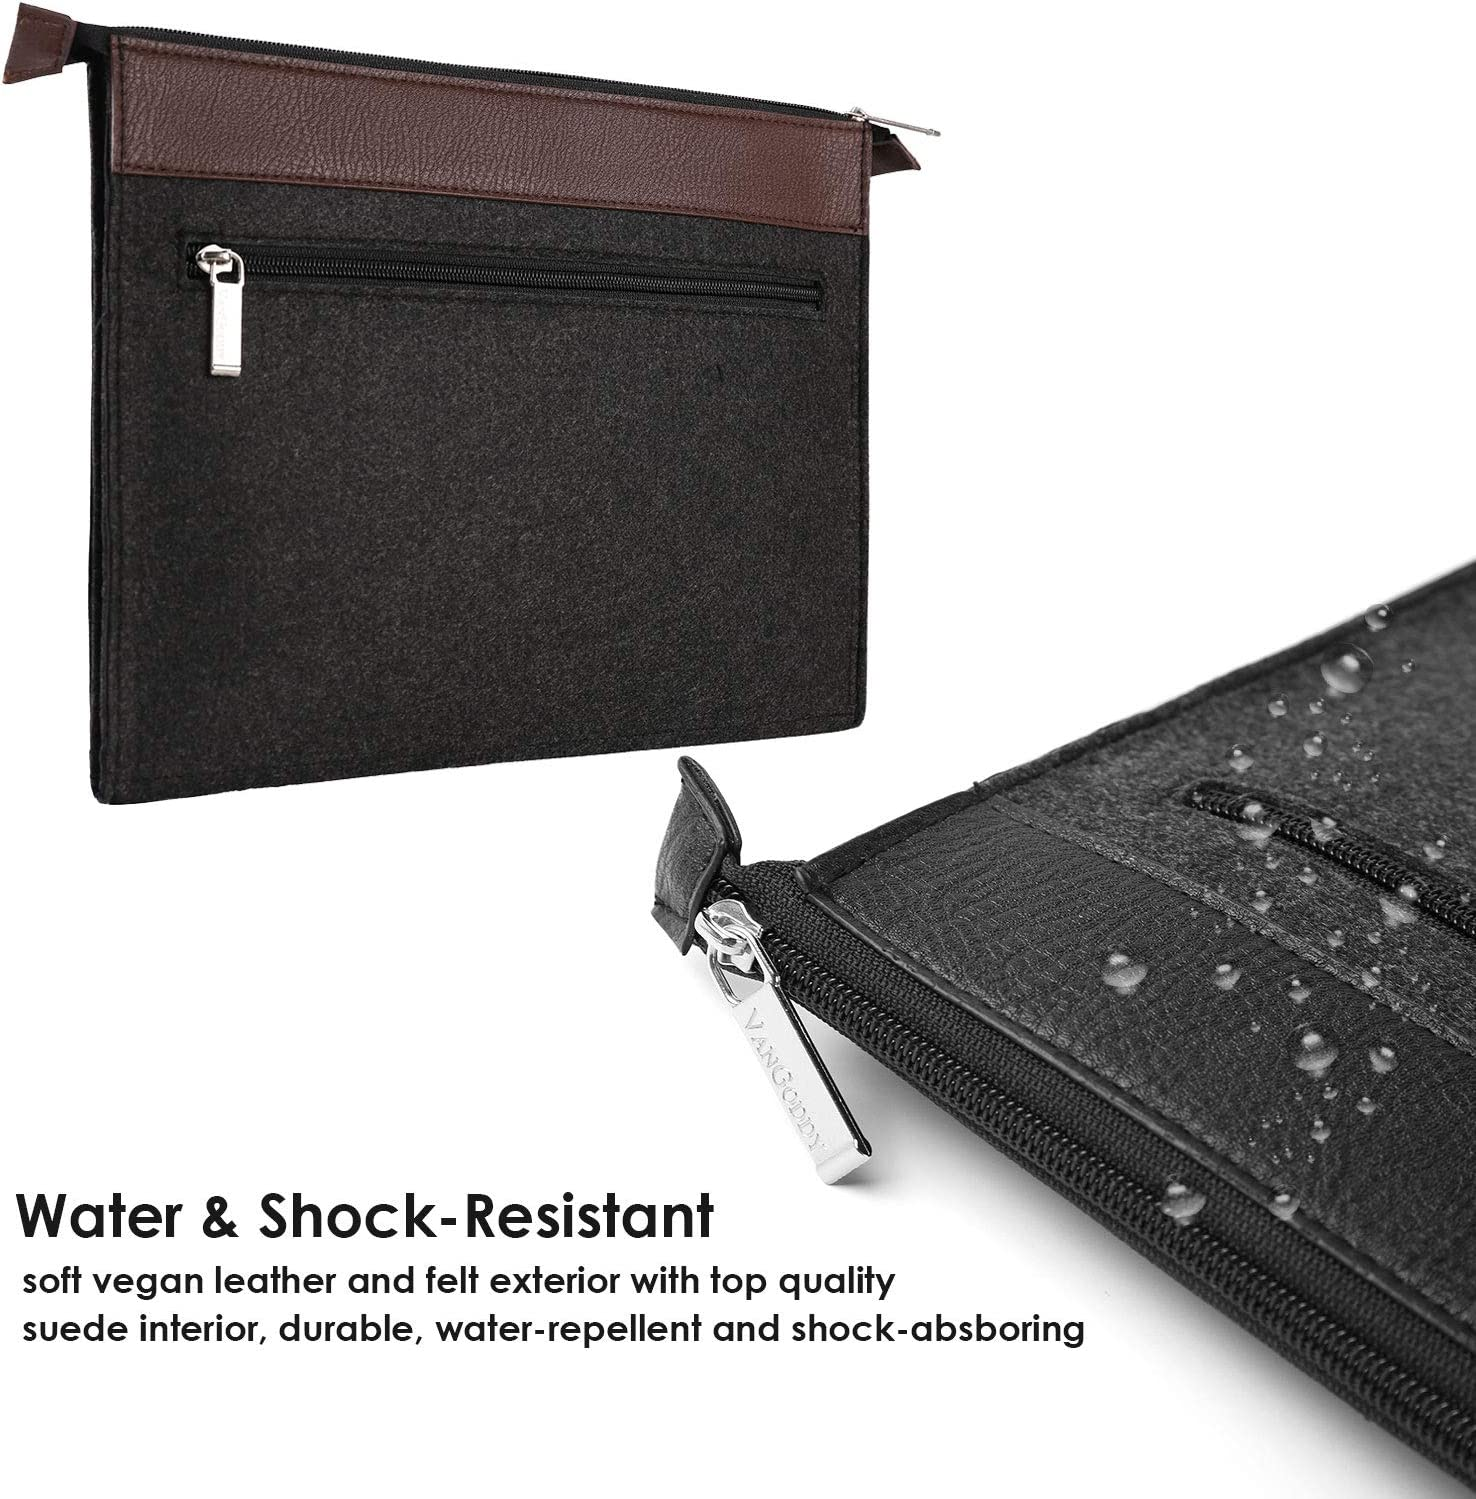 Water Resistant Notebook Bag Case with Accessory Pocket Protective Leather Felt Laptop Sleeve for New Surface Book 3 13.5 Inch Surface Laptop 3 2